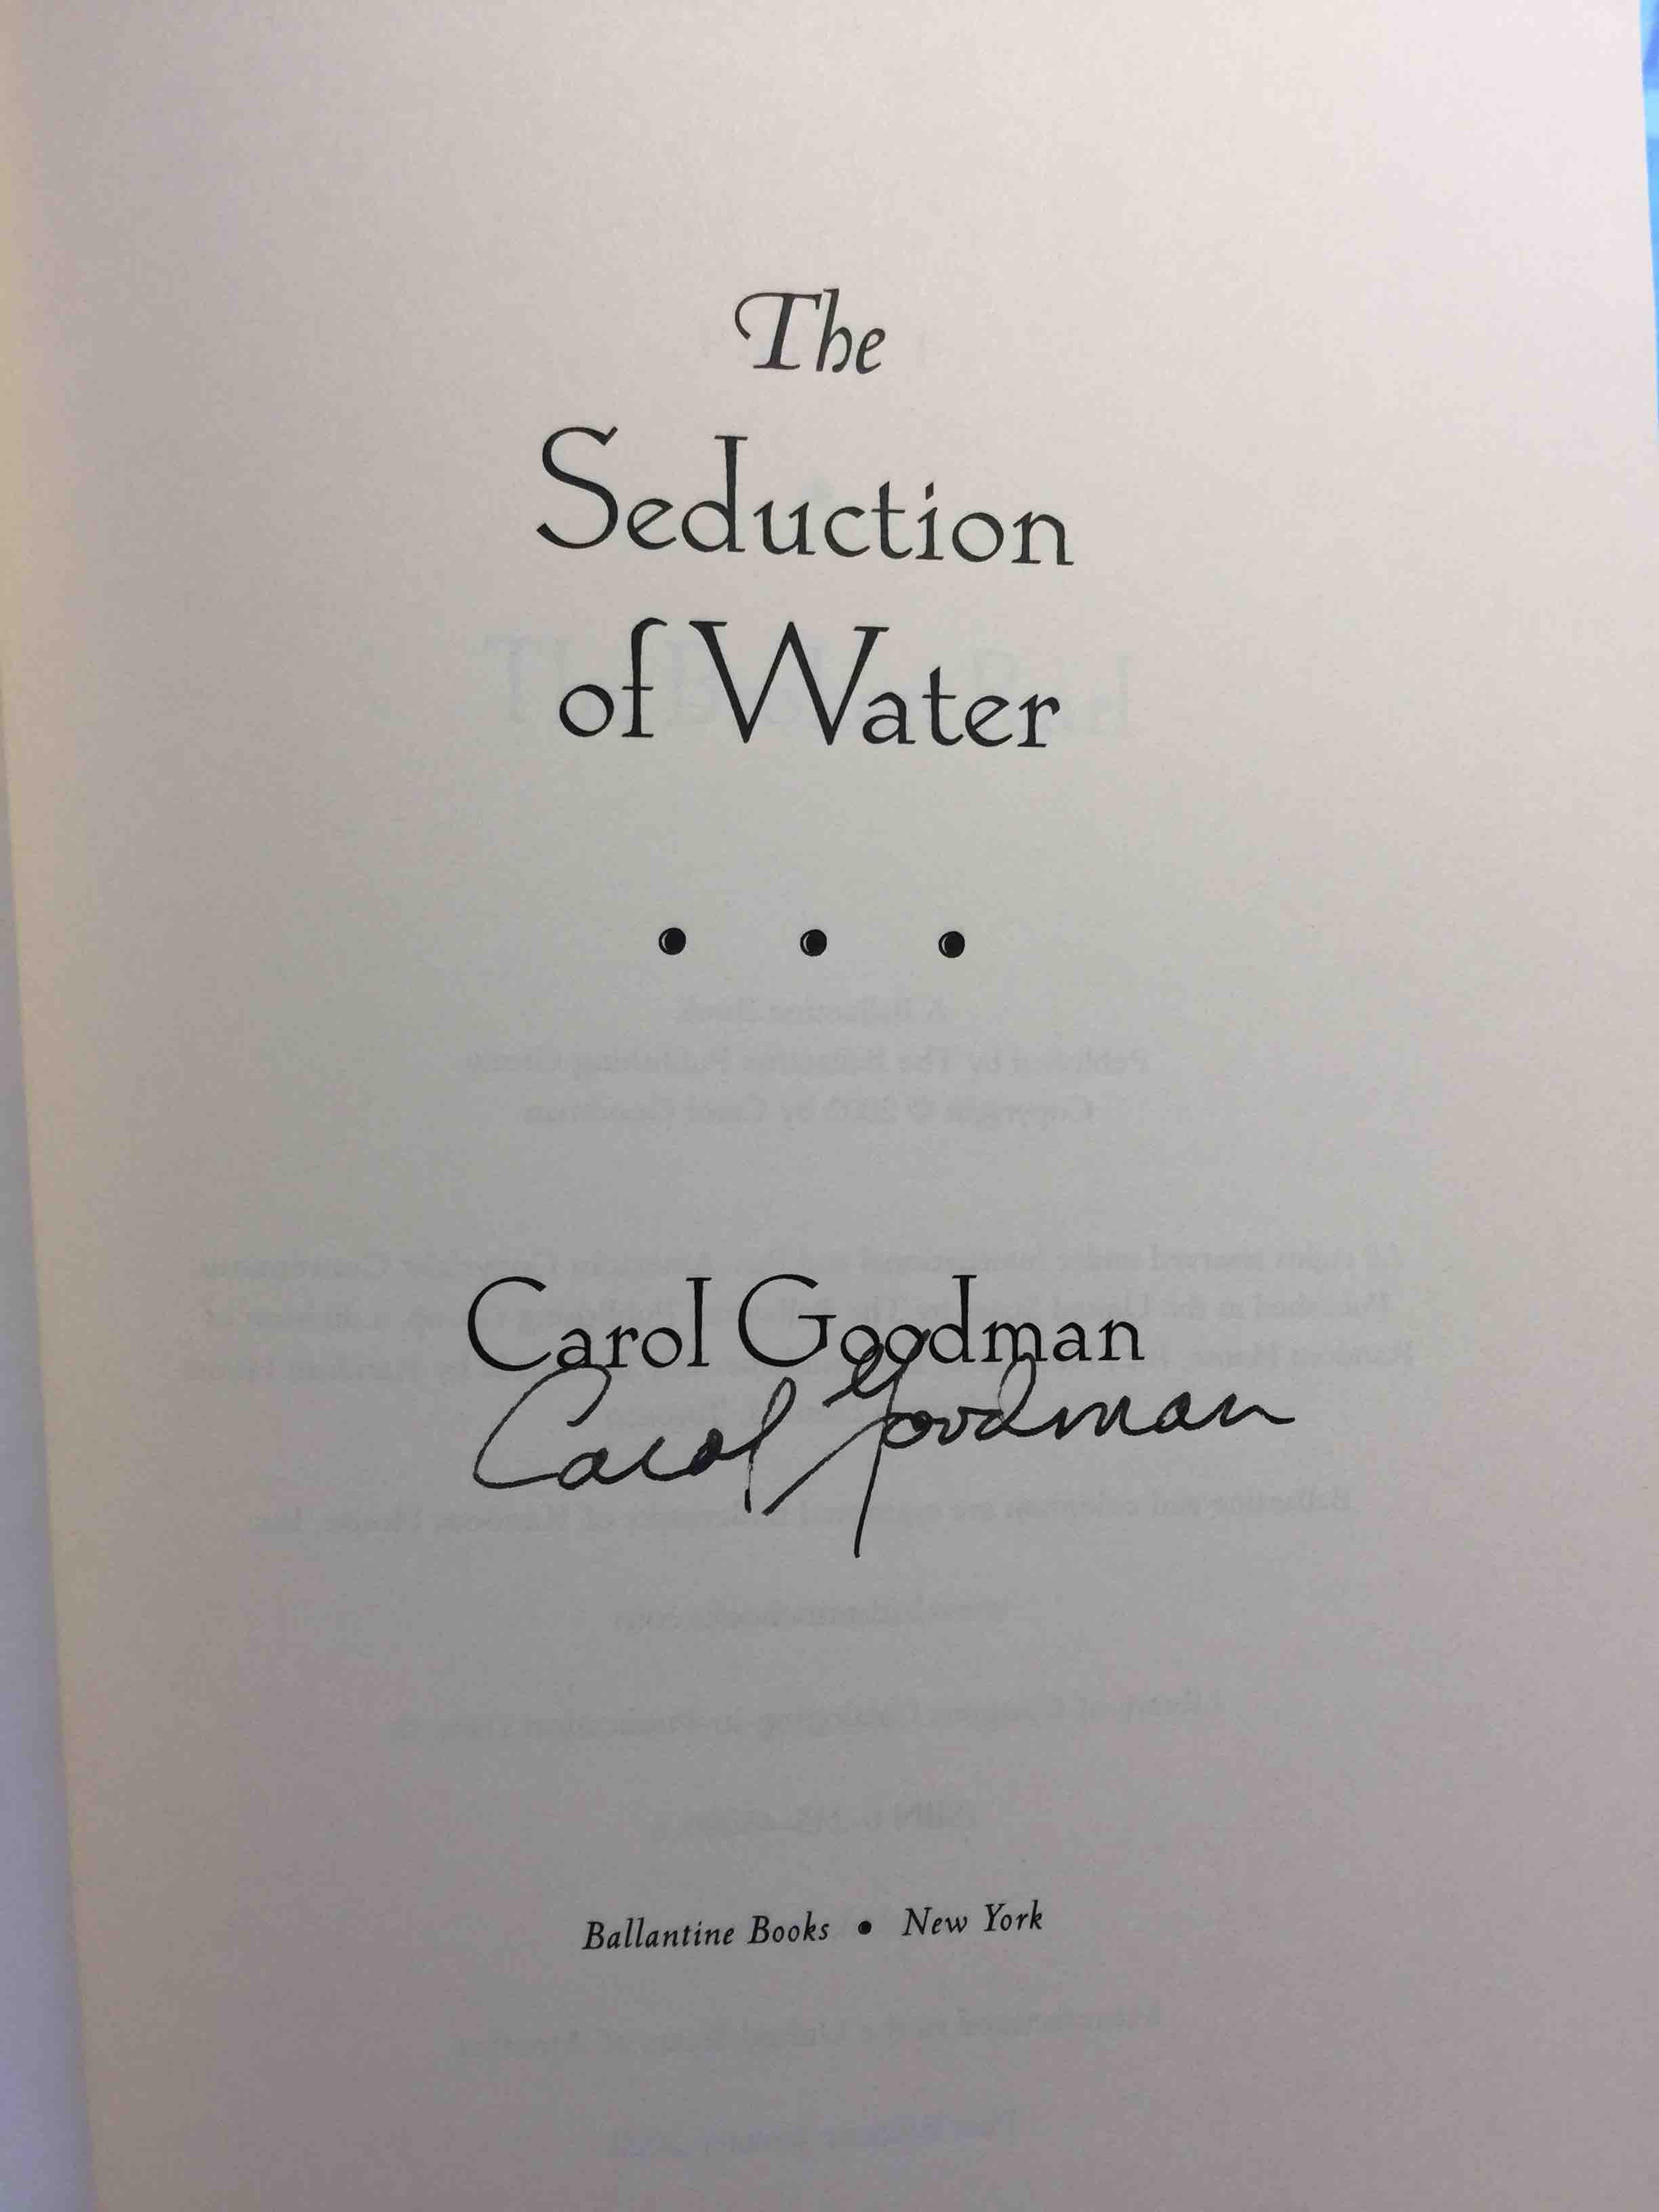 Book cover picture of Goodman, Carol. THE SEDUCTION OF WATER. New York: Ballantine, (2003.)